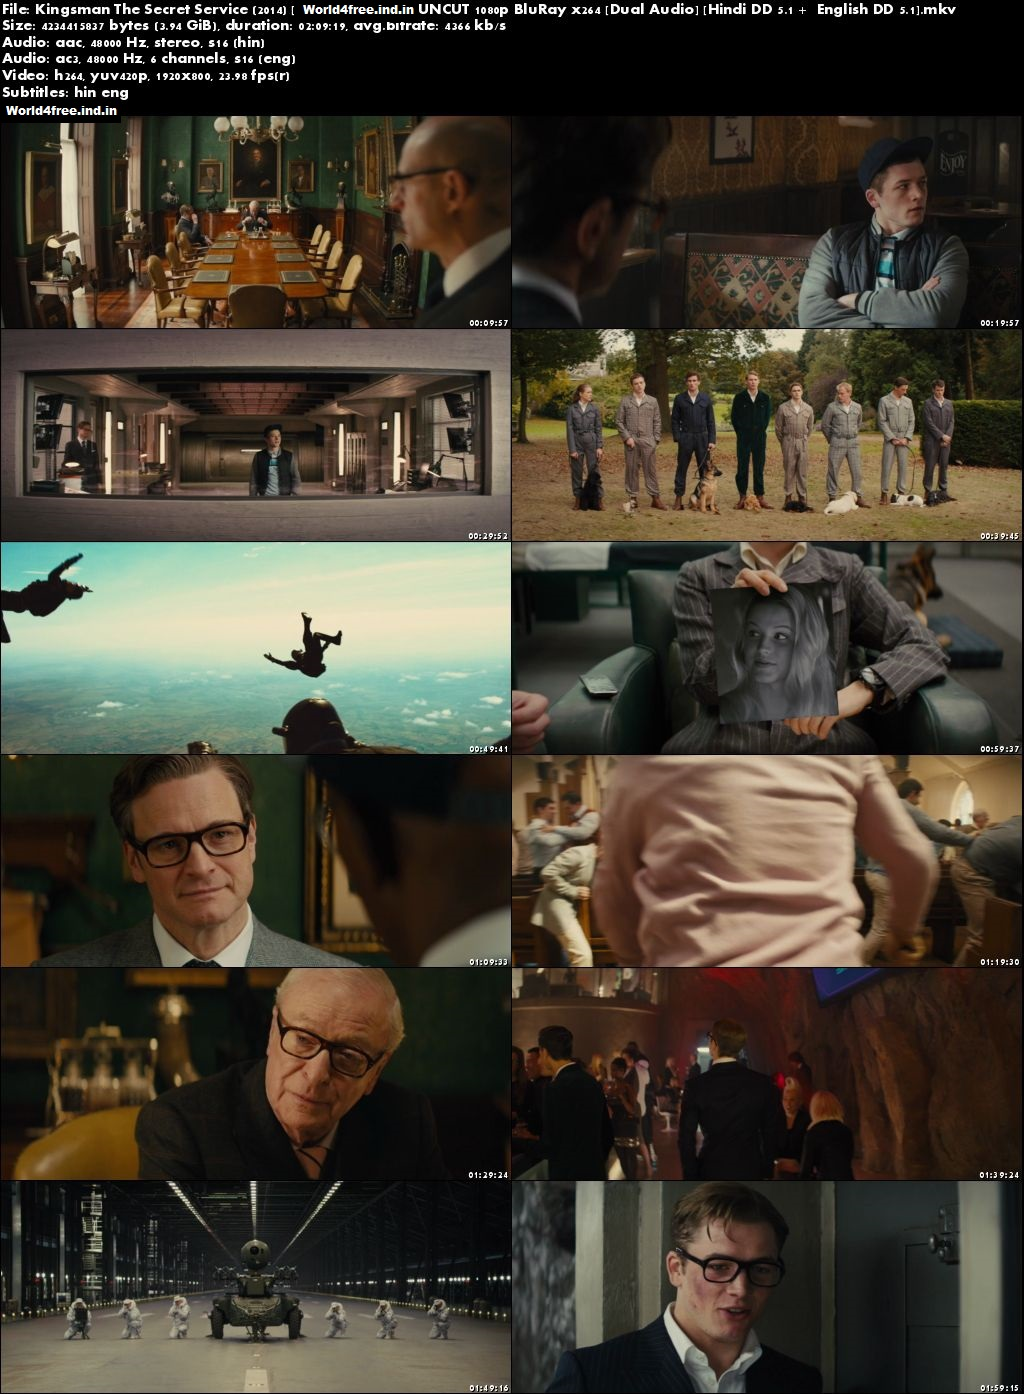 Kingsman The Secret Service 2014 worldfree4u BRRip 720p Dual Audio Download